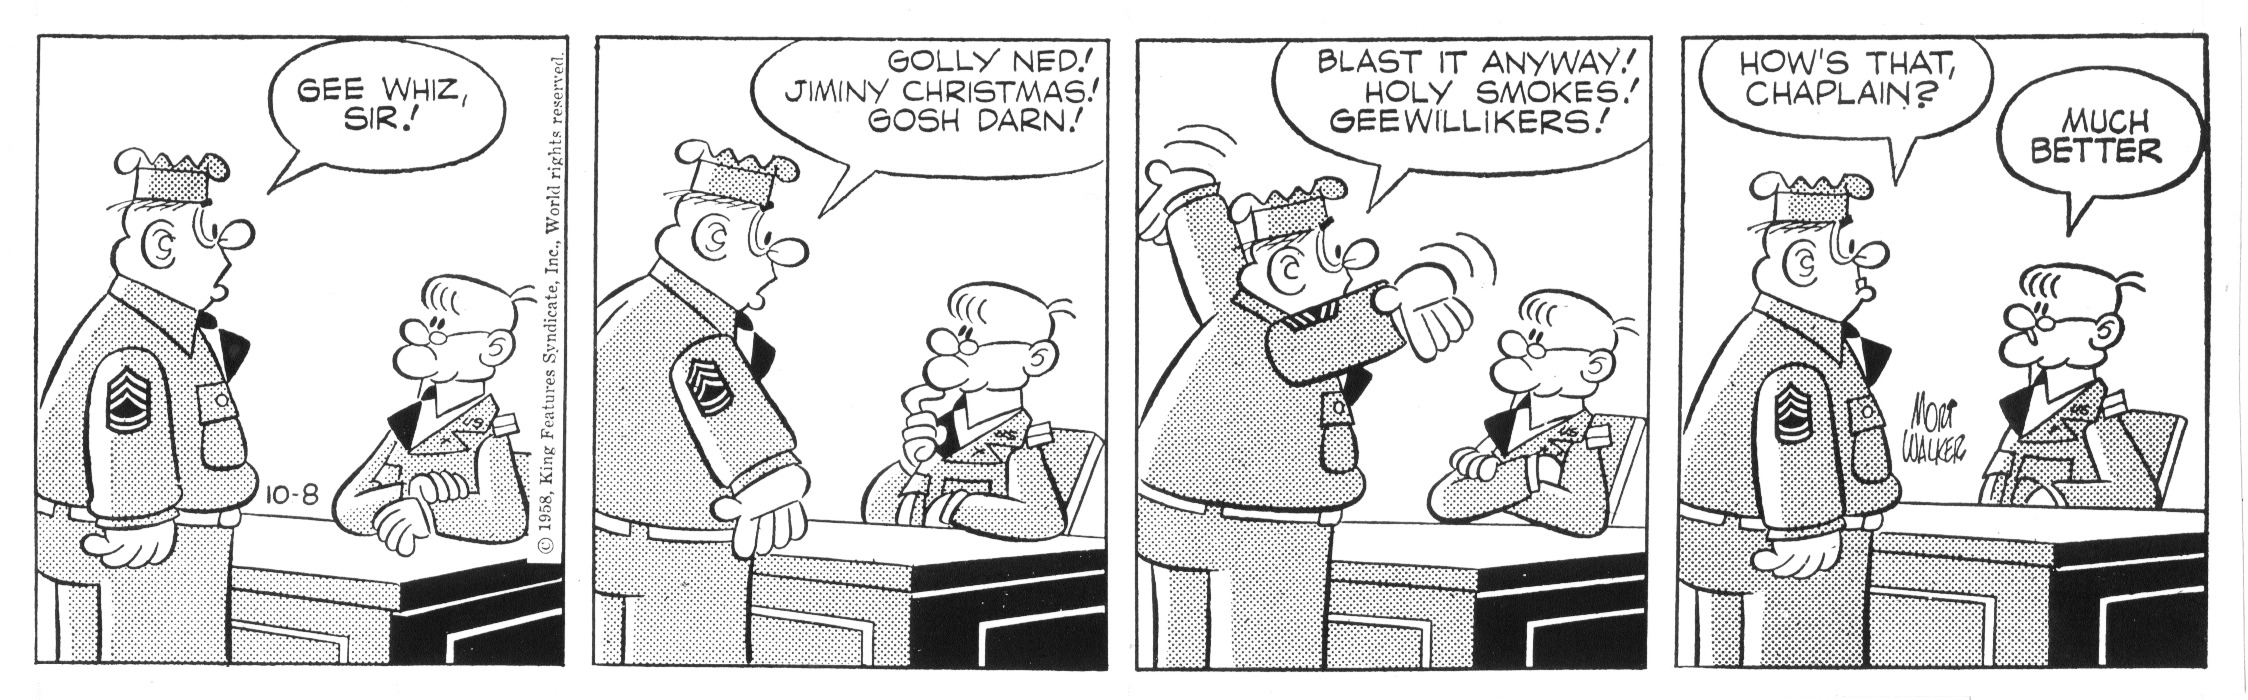 Beetle Bailey daily strip, October 8, 1958.